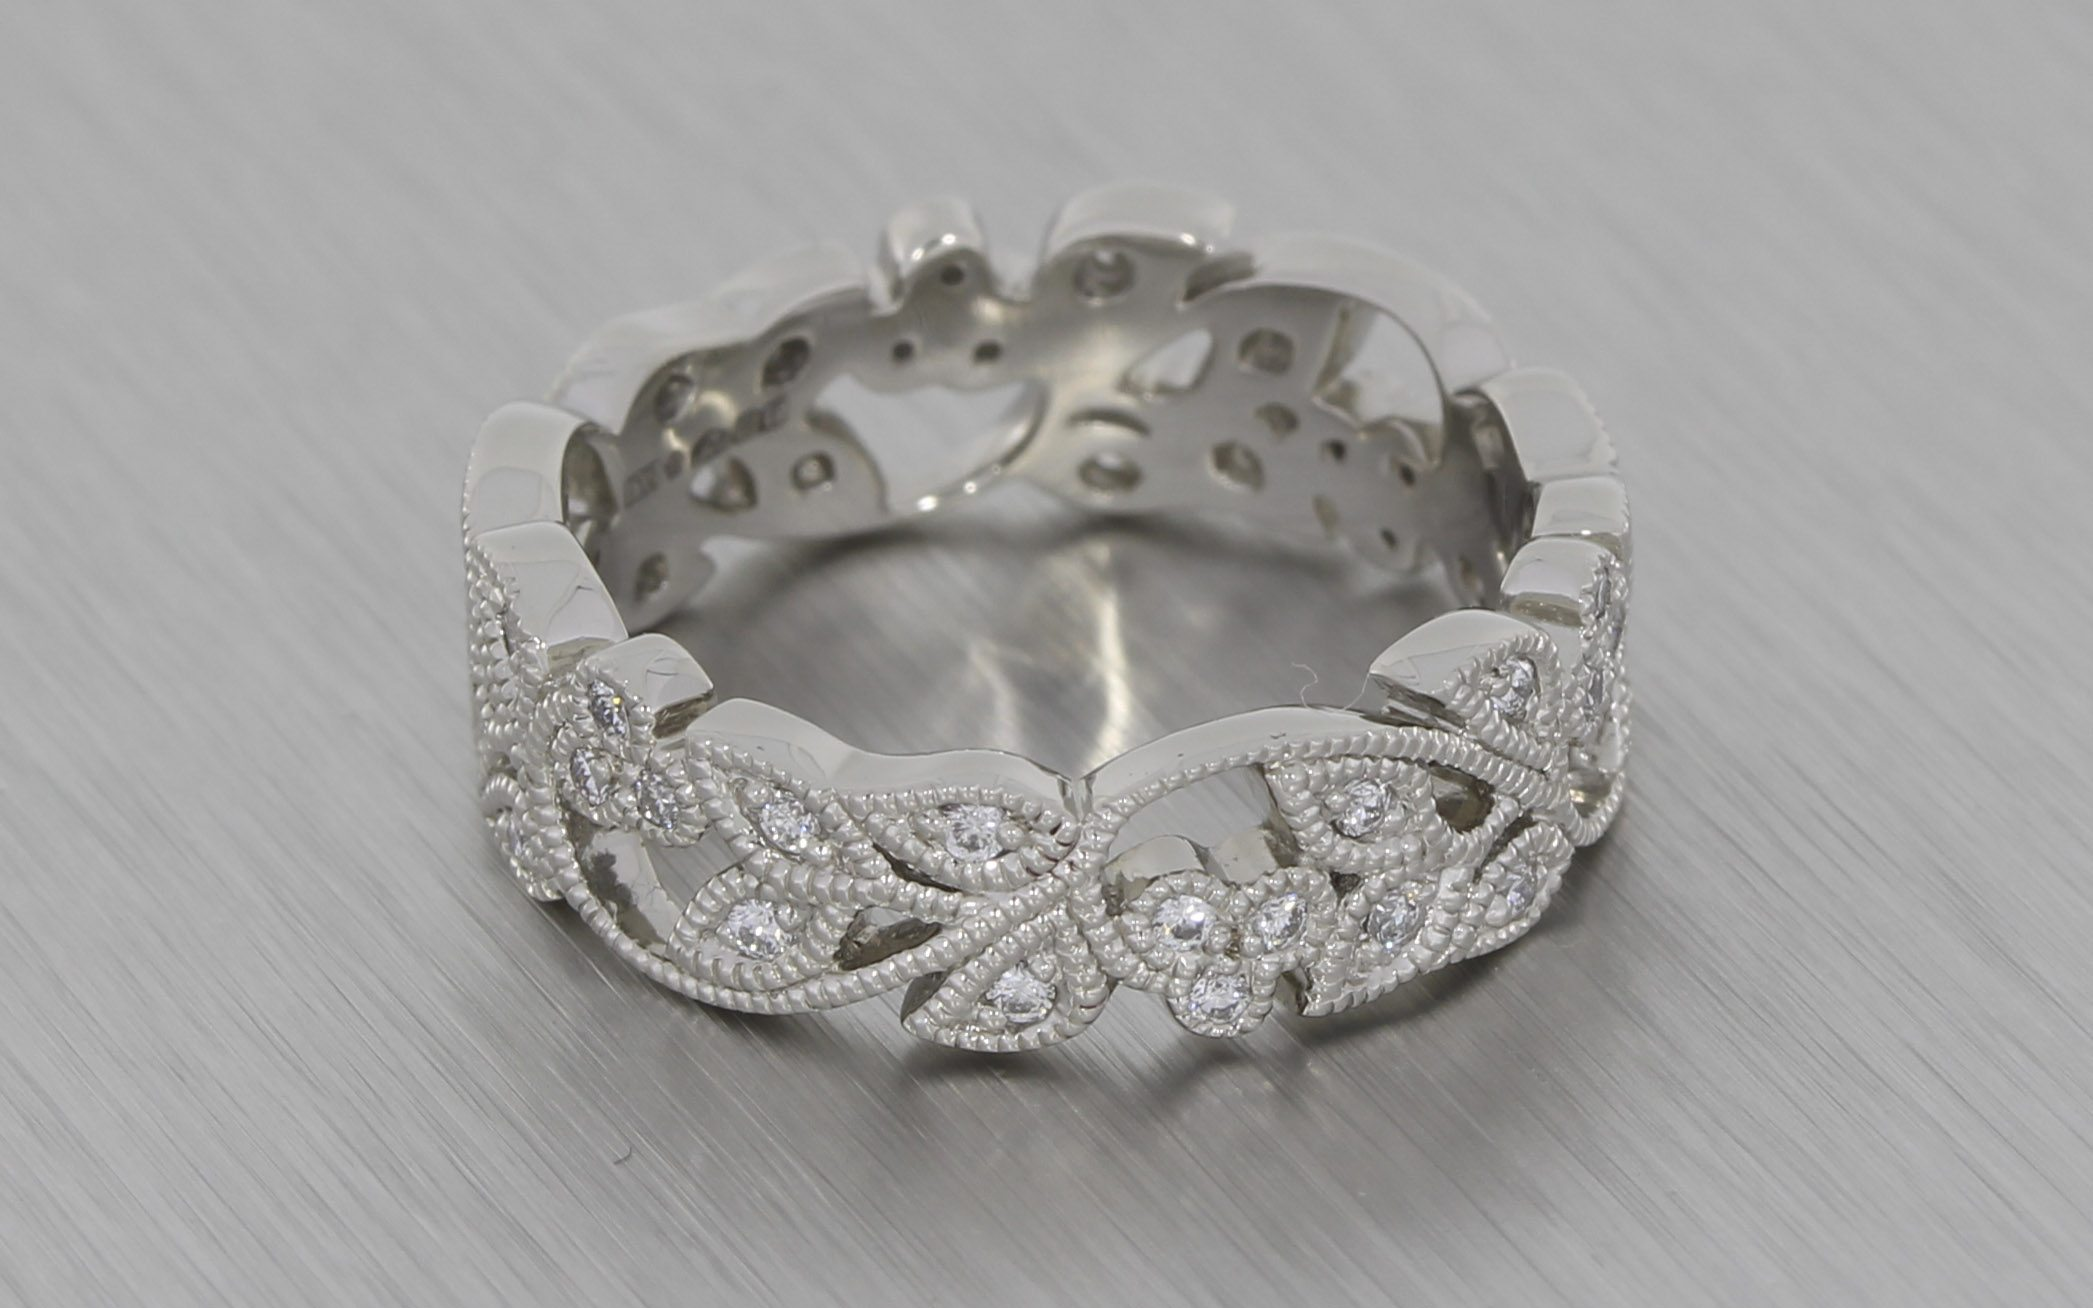 Stunning Vintage Floral Style Platinum Wedding Band With